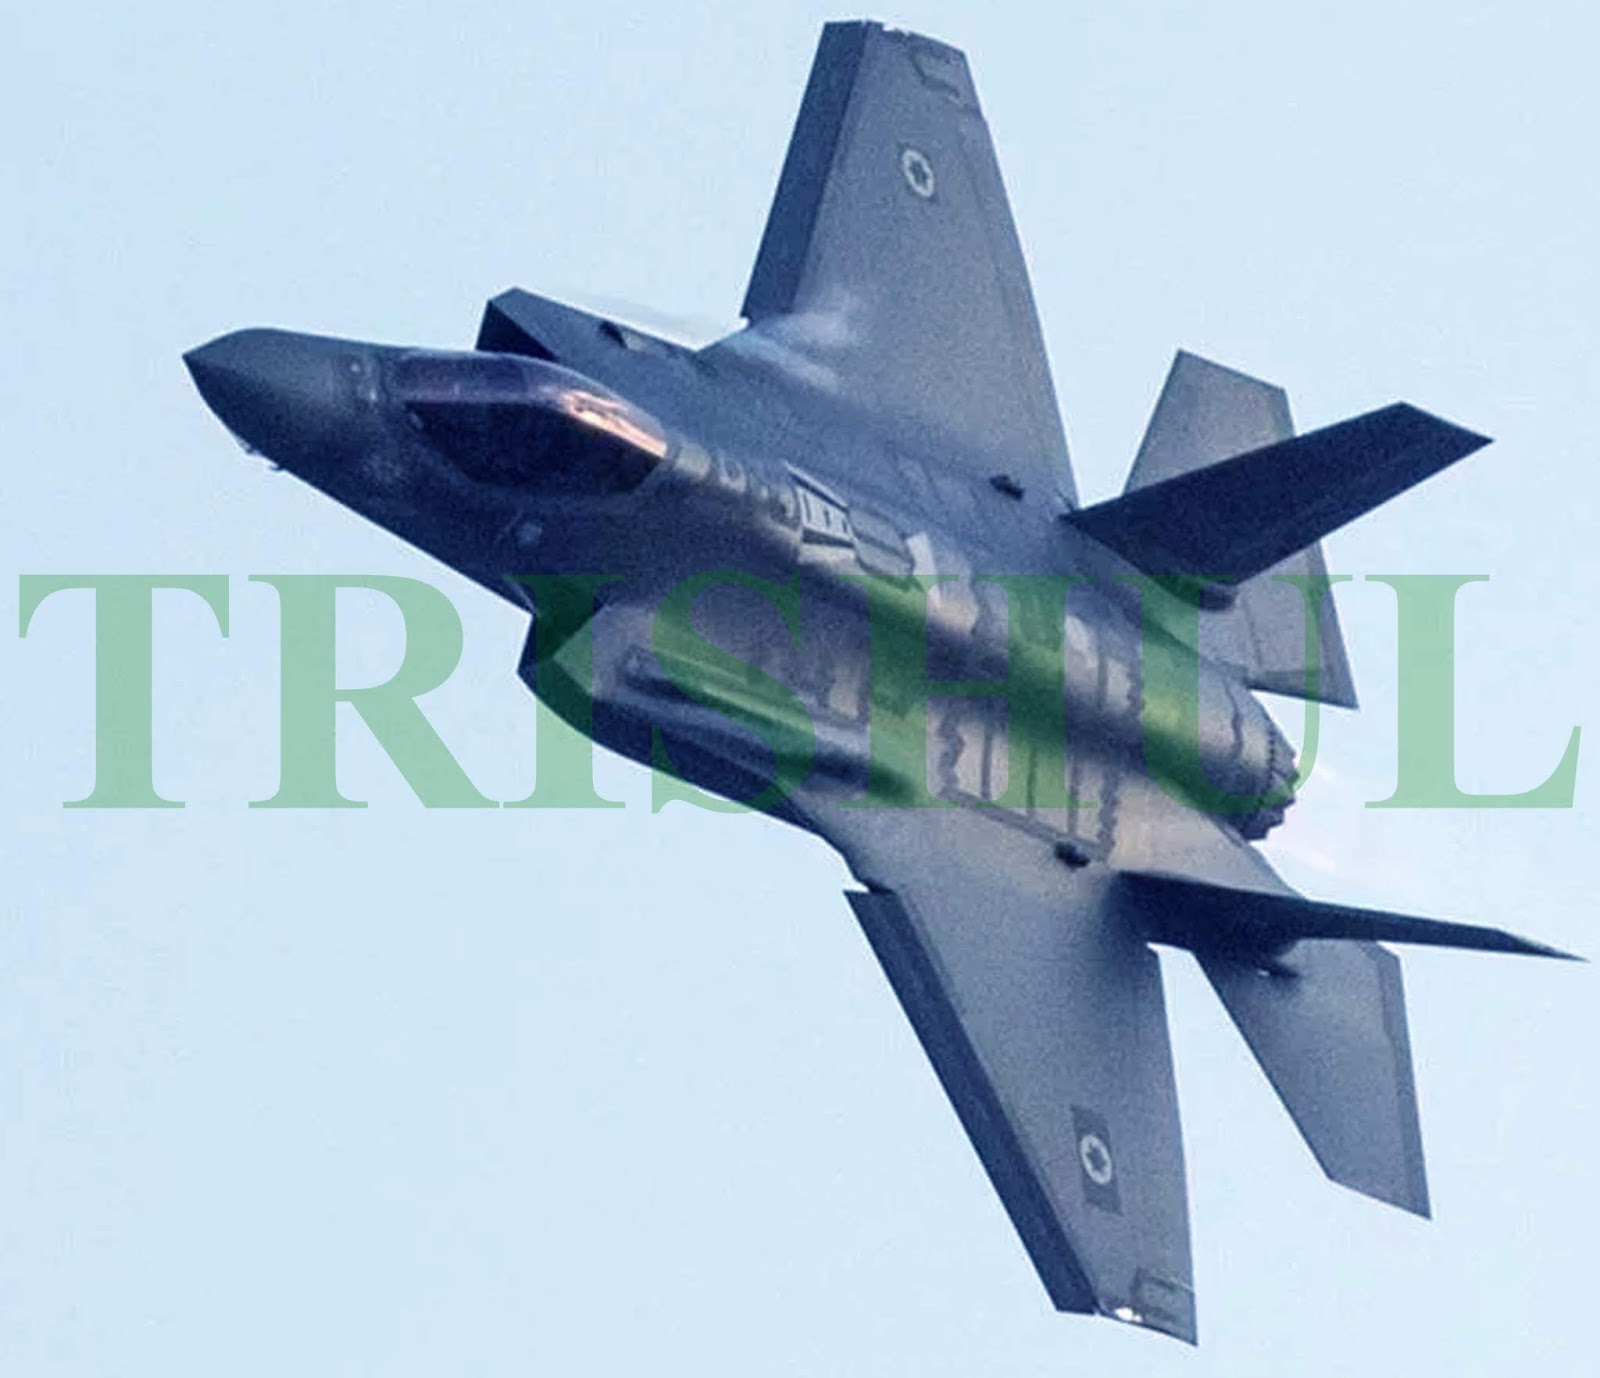 TRISHUL: IDF-AF Becomes World's First Air Force To Employ F